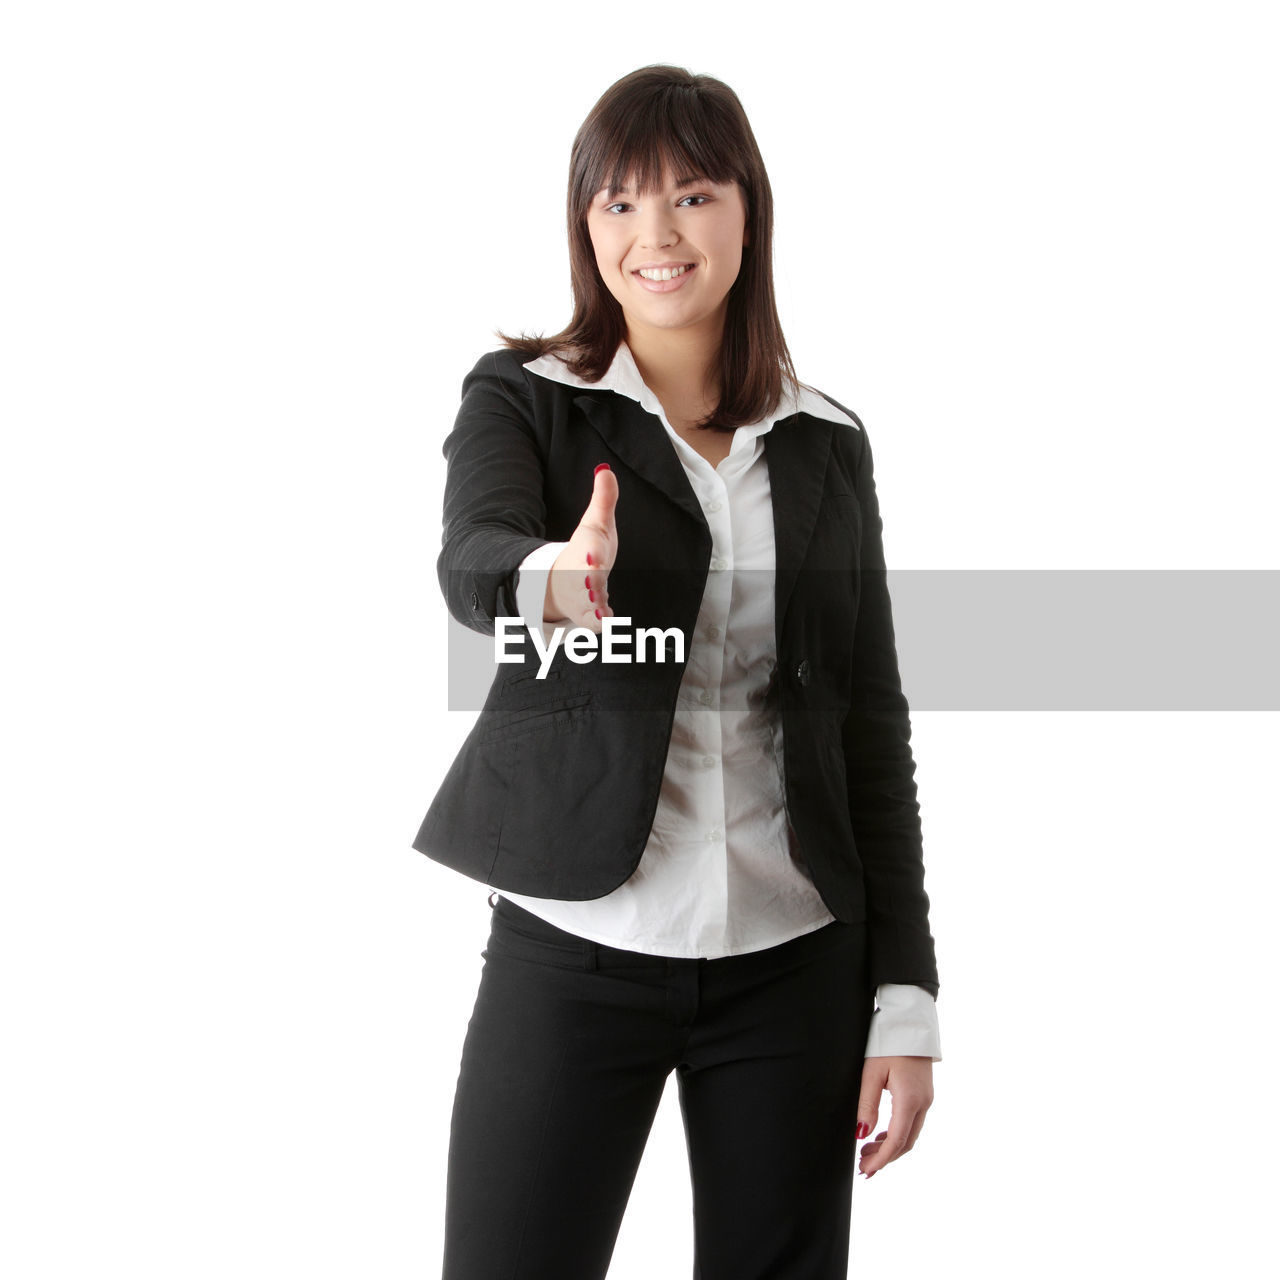 white background, standing, one person, studio shot, front view, looking at camera, smiling, three quarter length, portrait, young adult, businesswoman, young women, indoors, cut out, women, business person, happiness, confidence, business, hand, hairstyle, beautiful woman